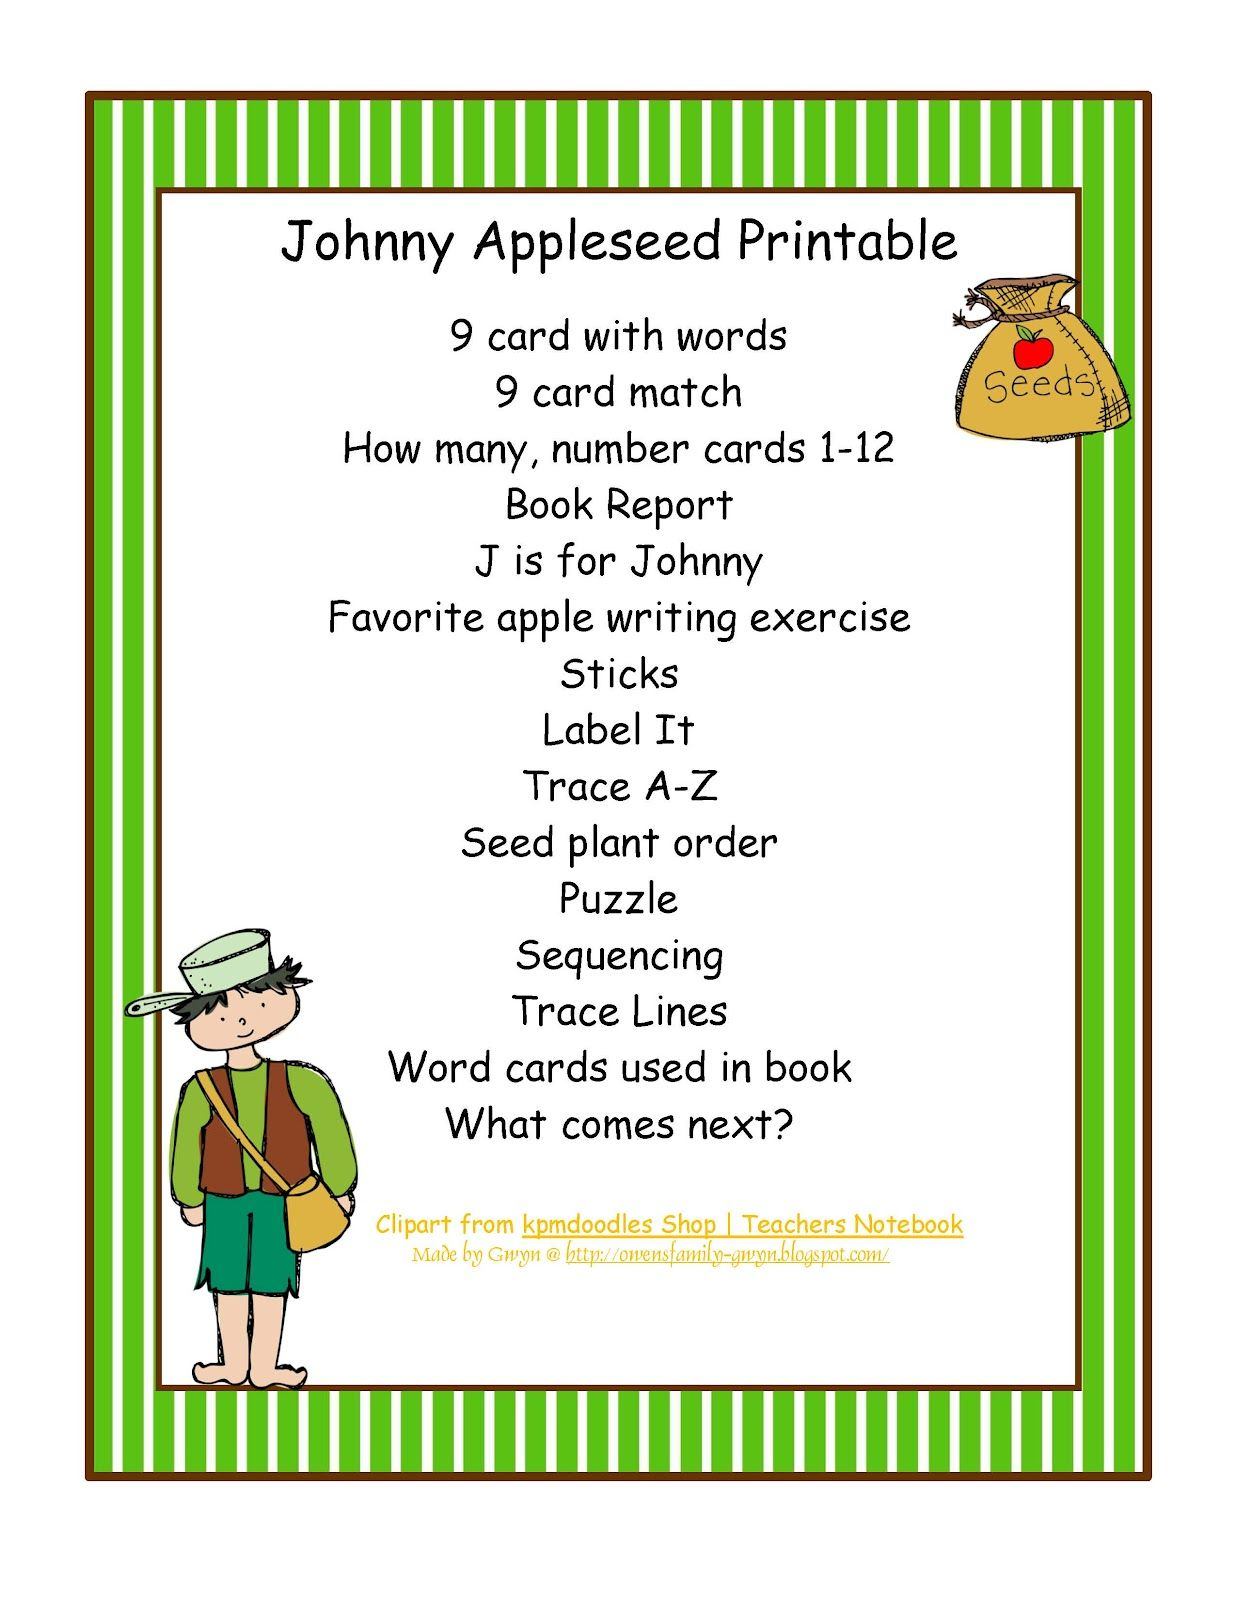 photograph relating to Johnny Appleseed Printable Story named Johnny Appleseed Printable Higher education Apple seeds, Preschool